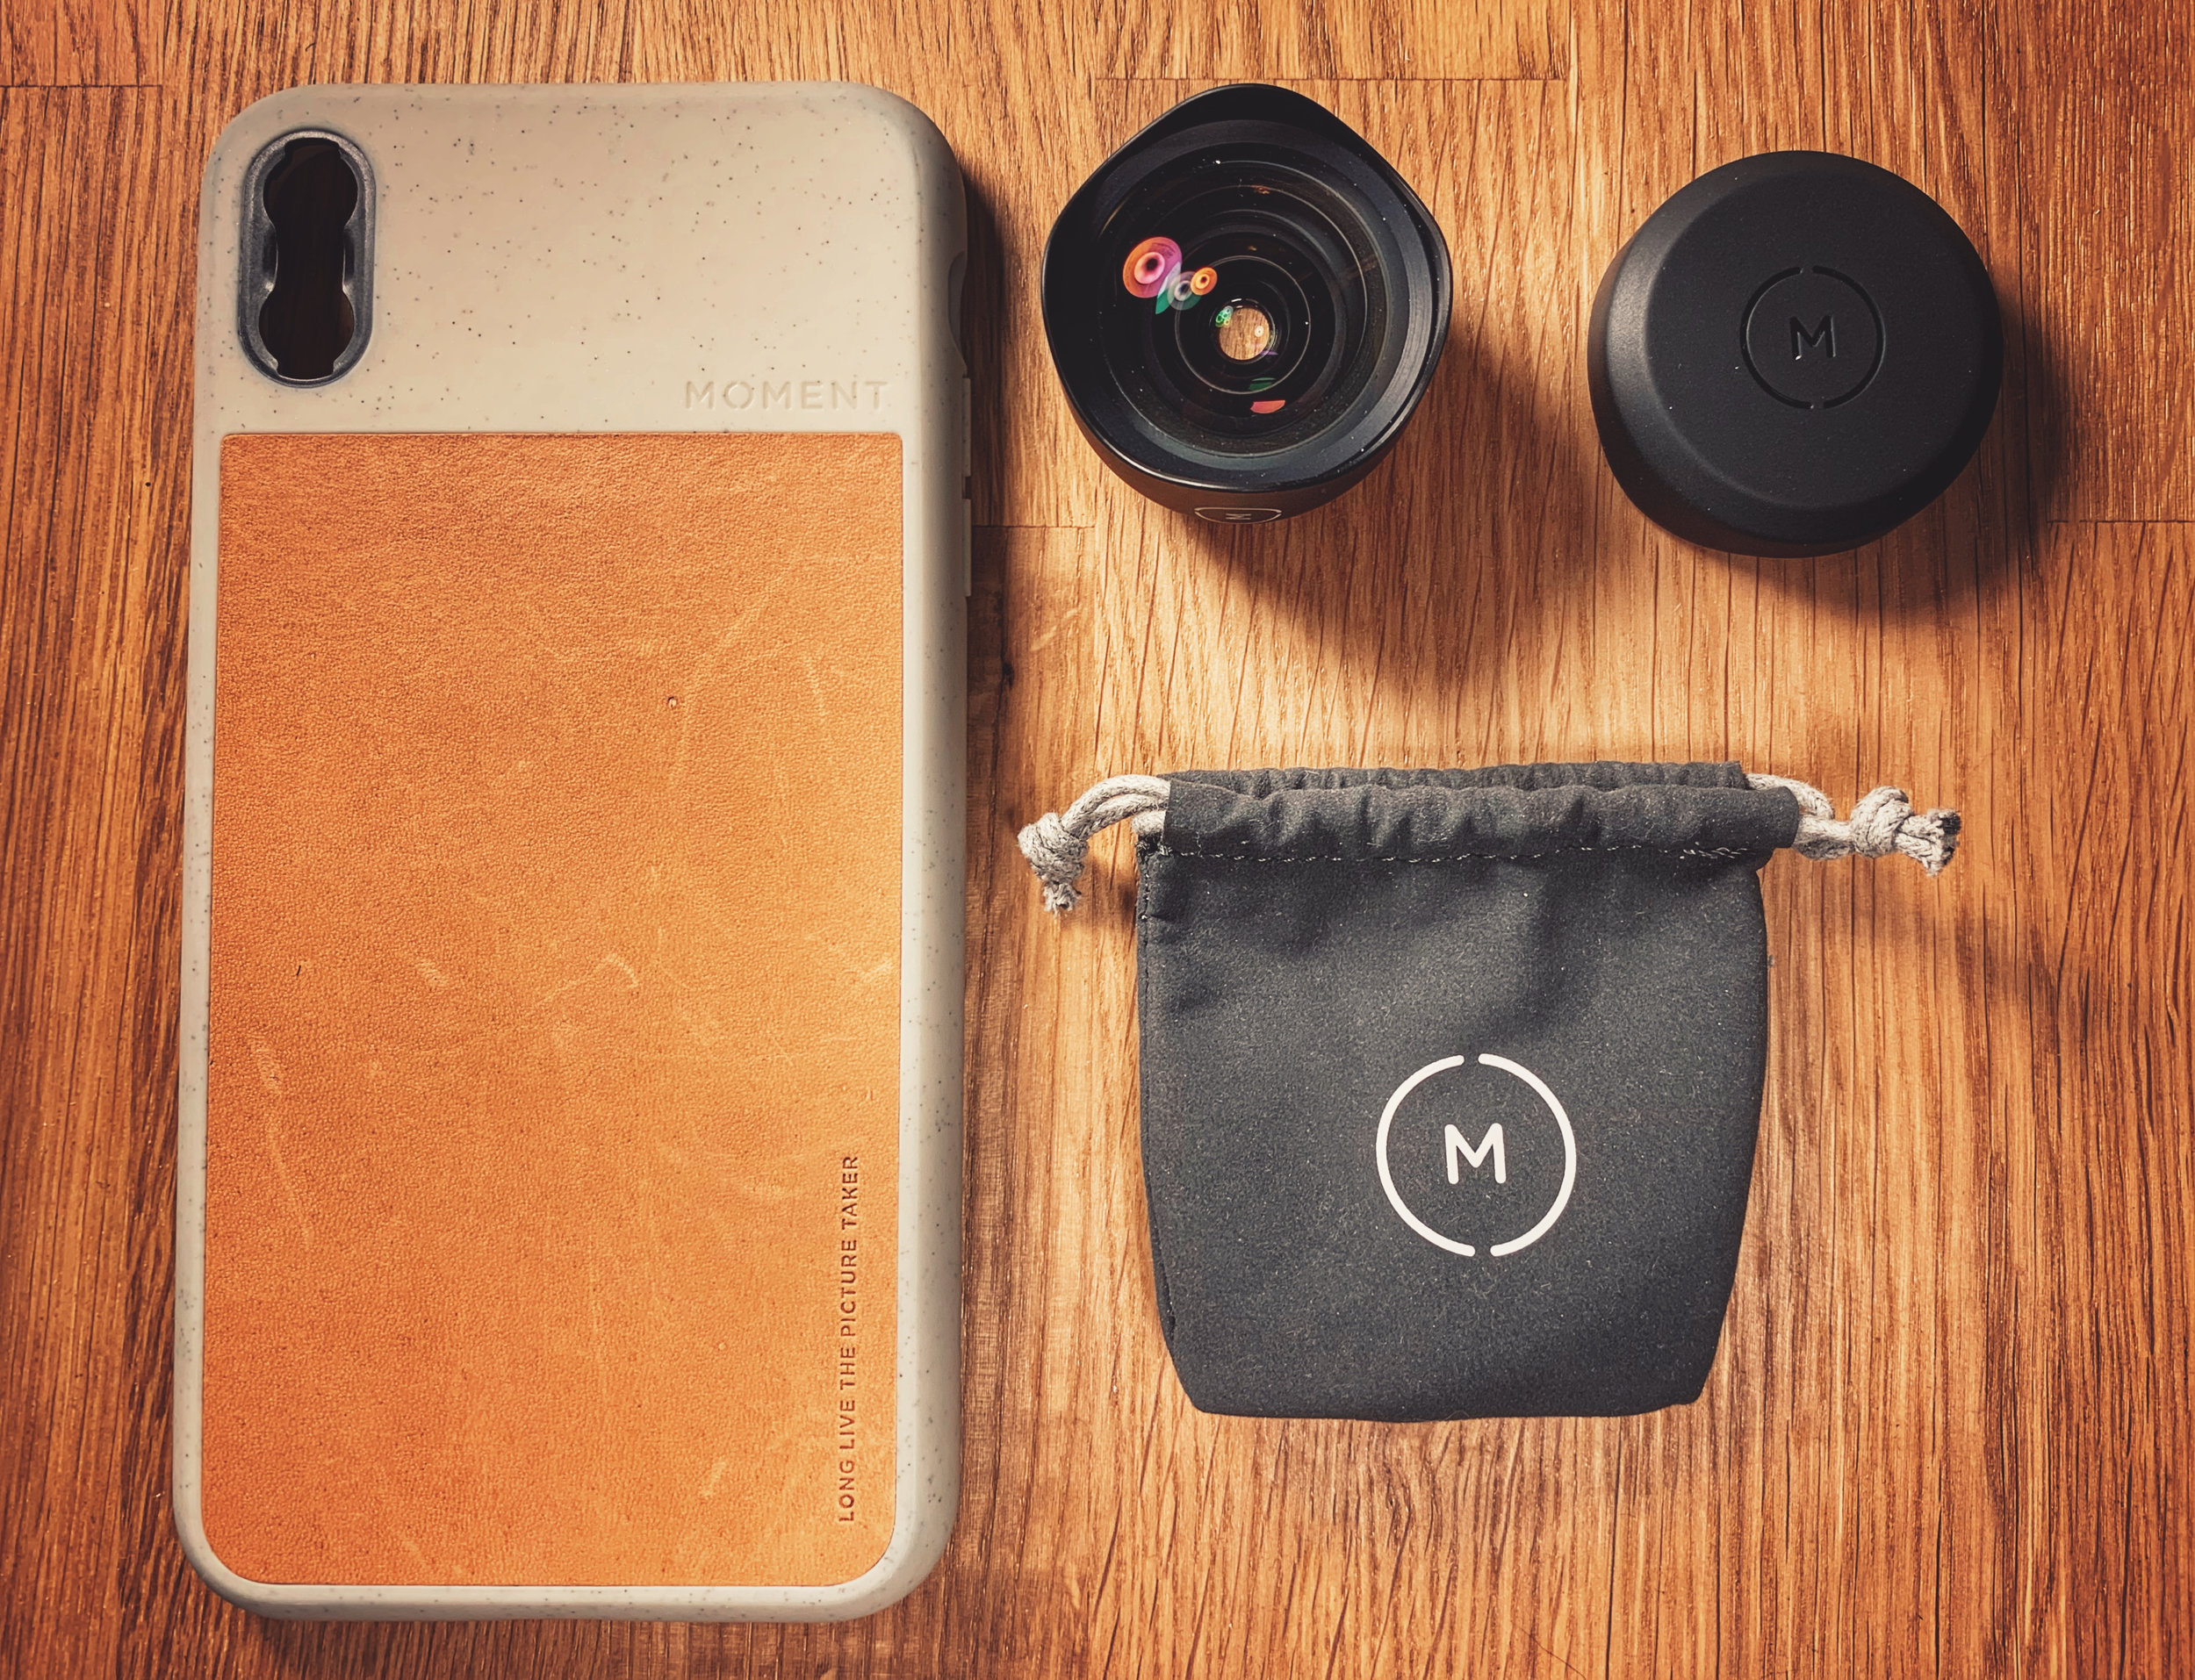 The standard Moment case and 18mm wide-angle lens (with cap and carry bag).